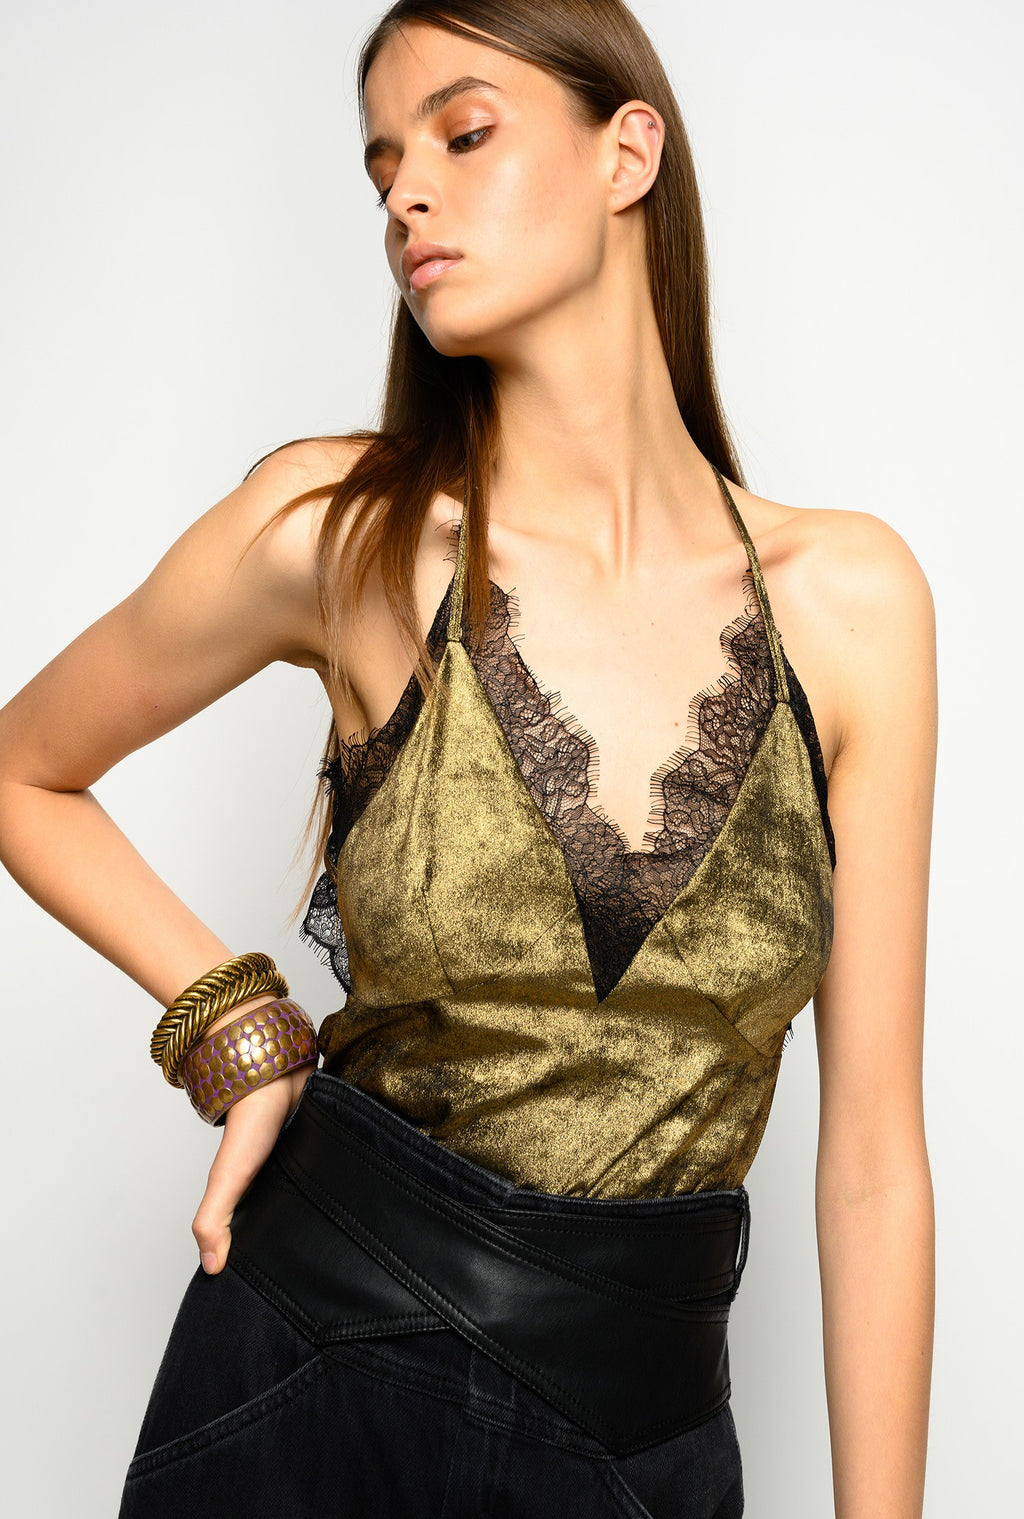 Metallic Gold Translucent Laminated Lingerie Top